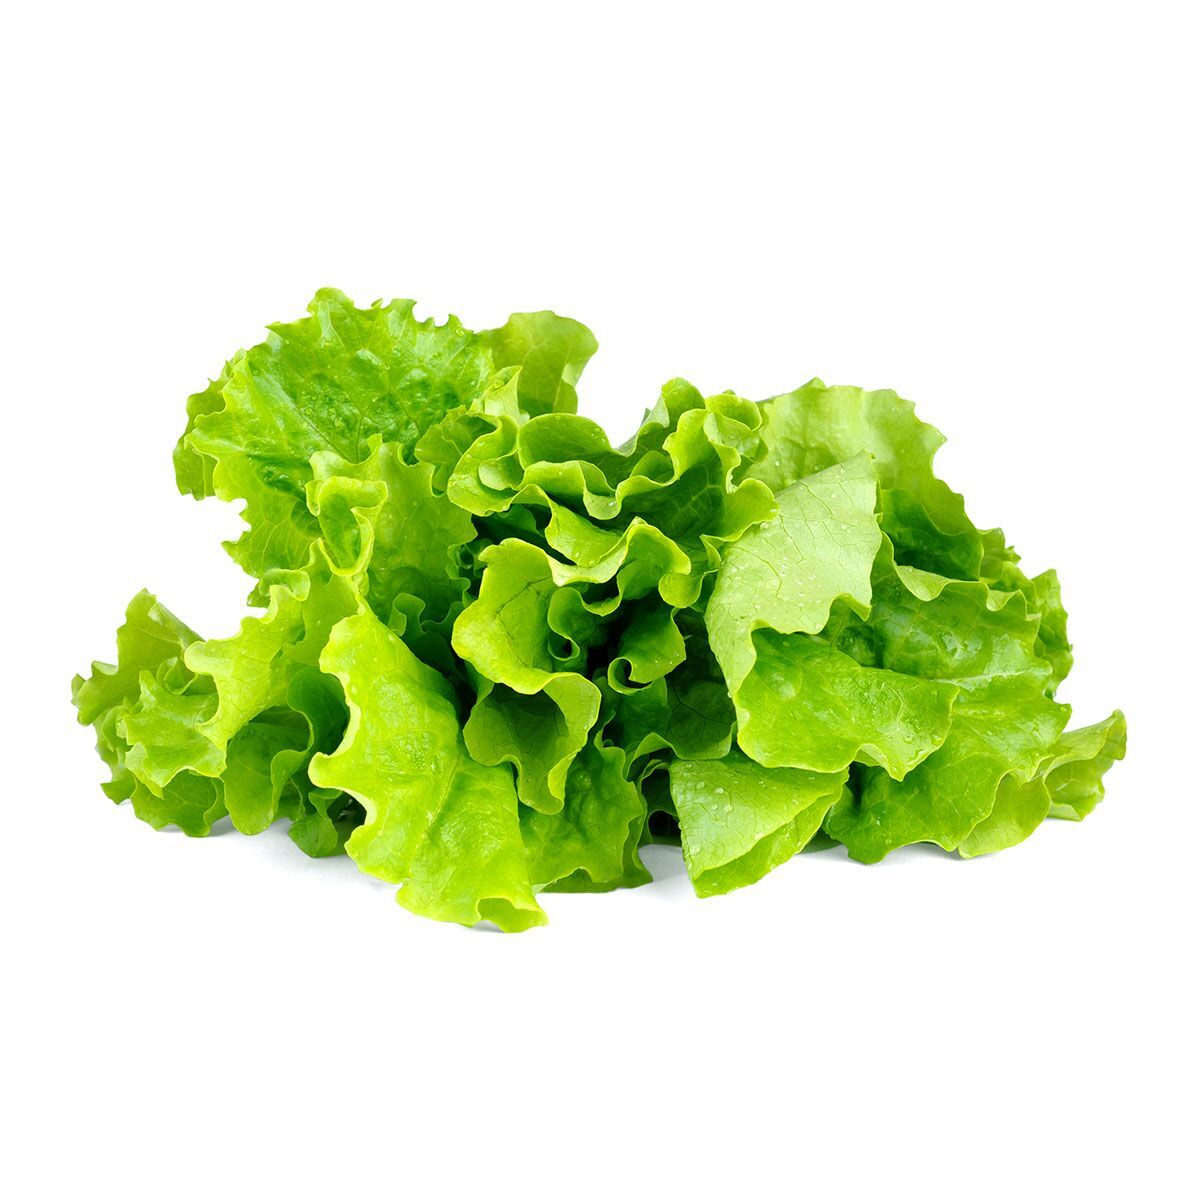 Green_Lettuce_plant_1200x1200_preview.jpg